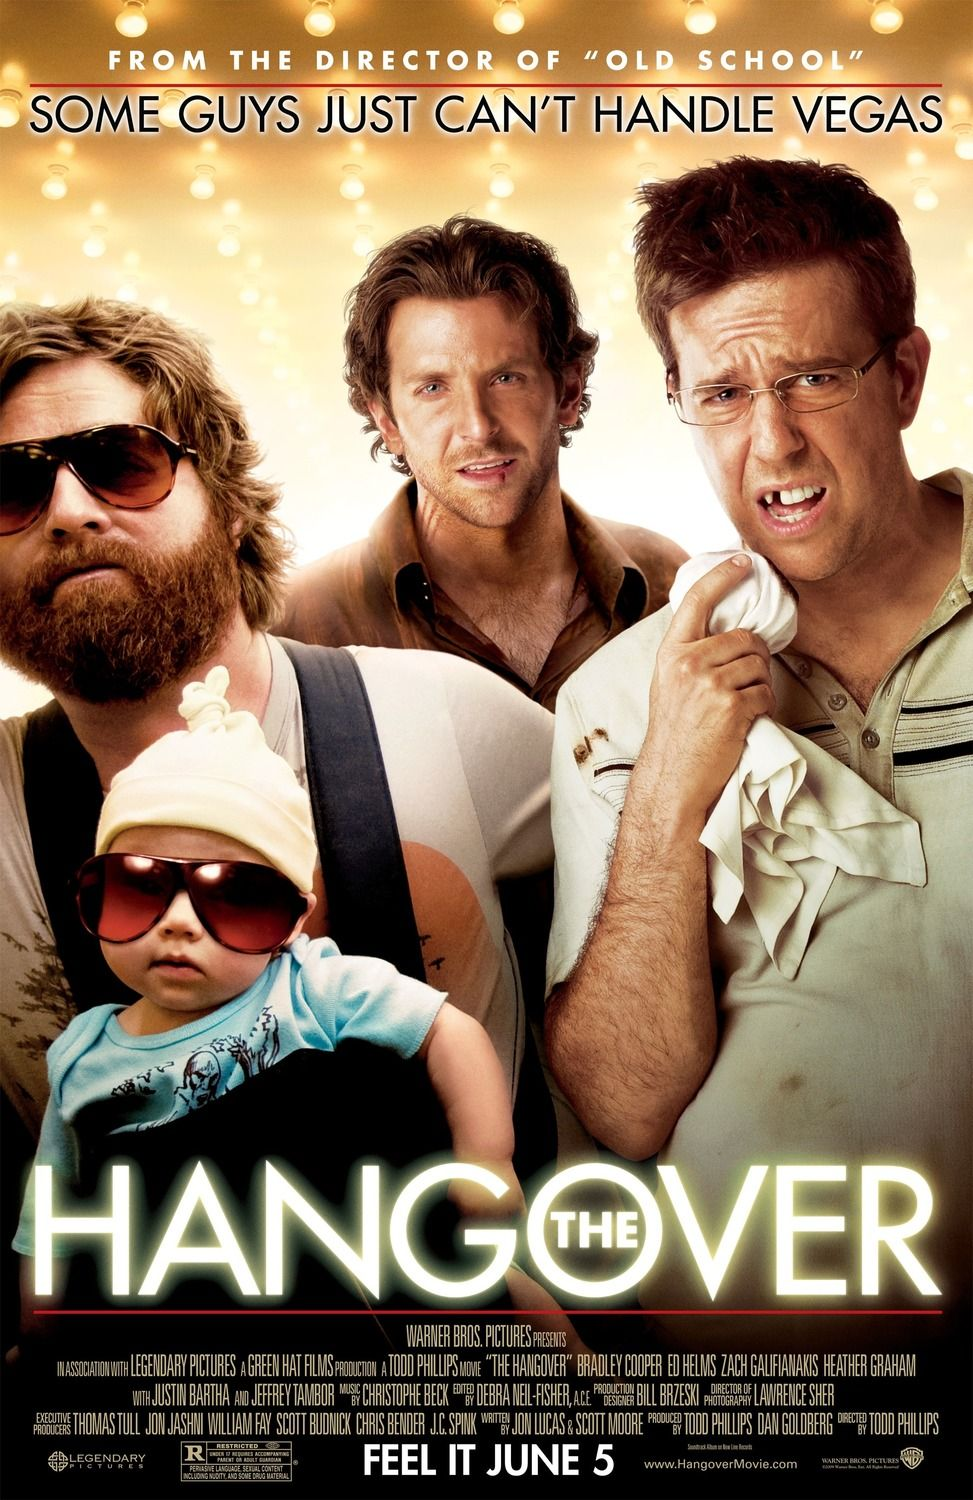 The Hangover 1 2009 Multi Size Film Canvas Wall Art Movie Poster Print Comedy